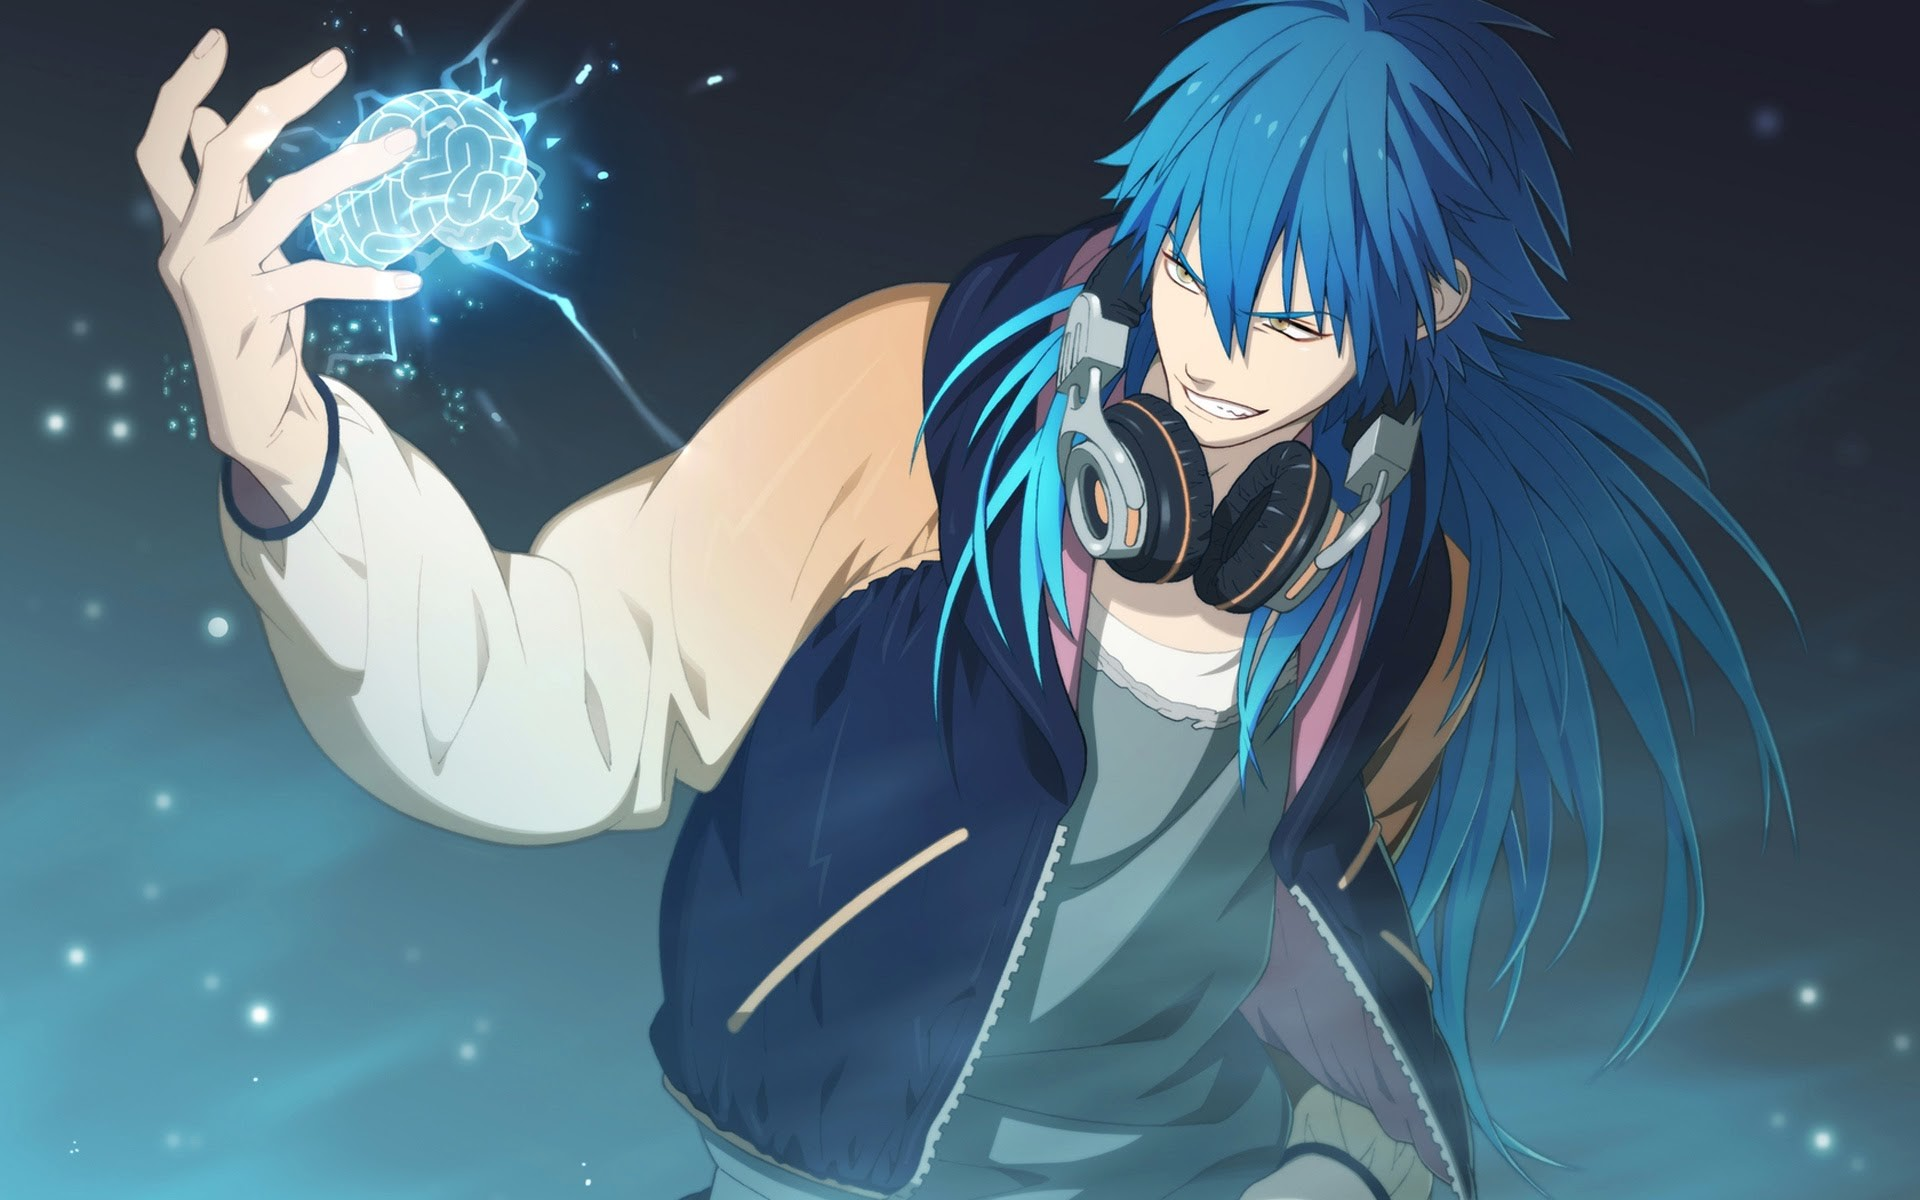 Anime Boy HD Wallpapers For Mobile